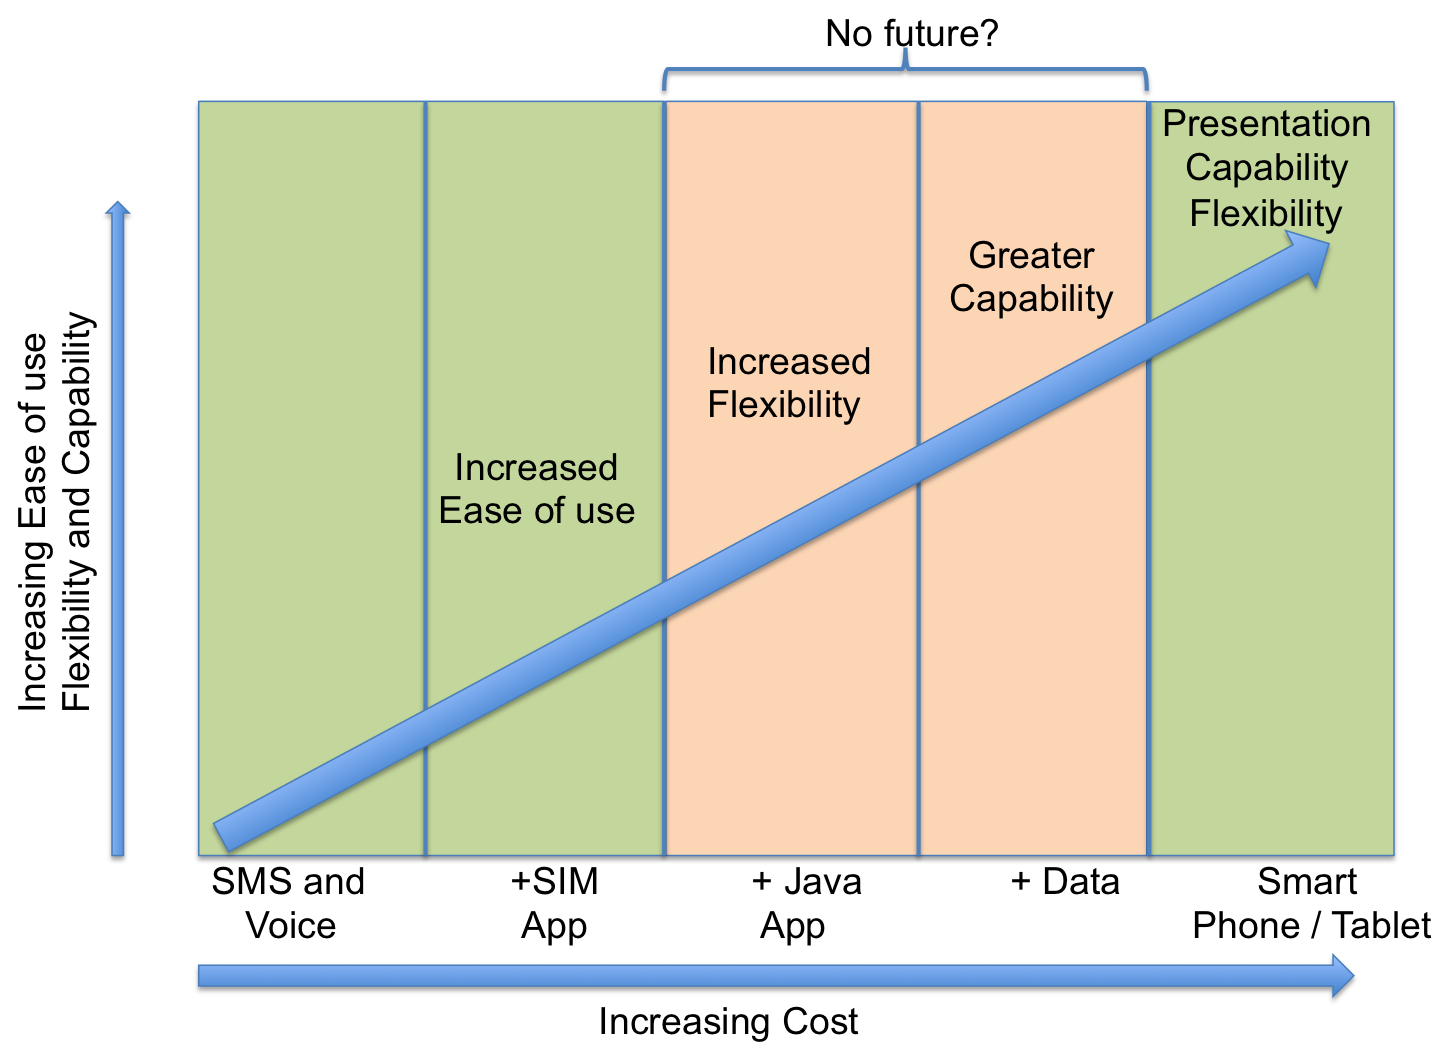 Phone cost versus ease of use, flexibility and capability